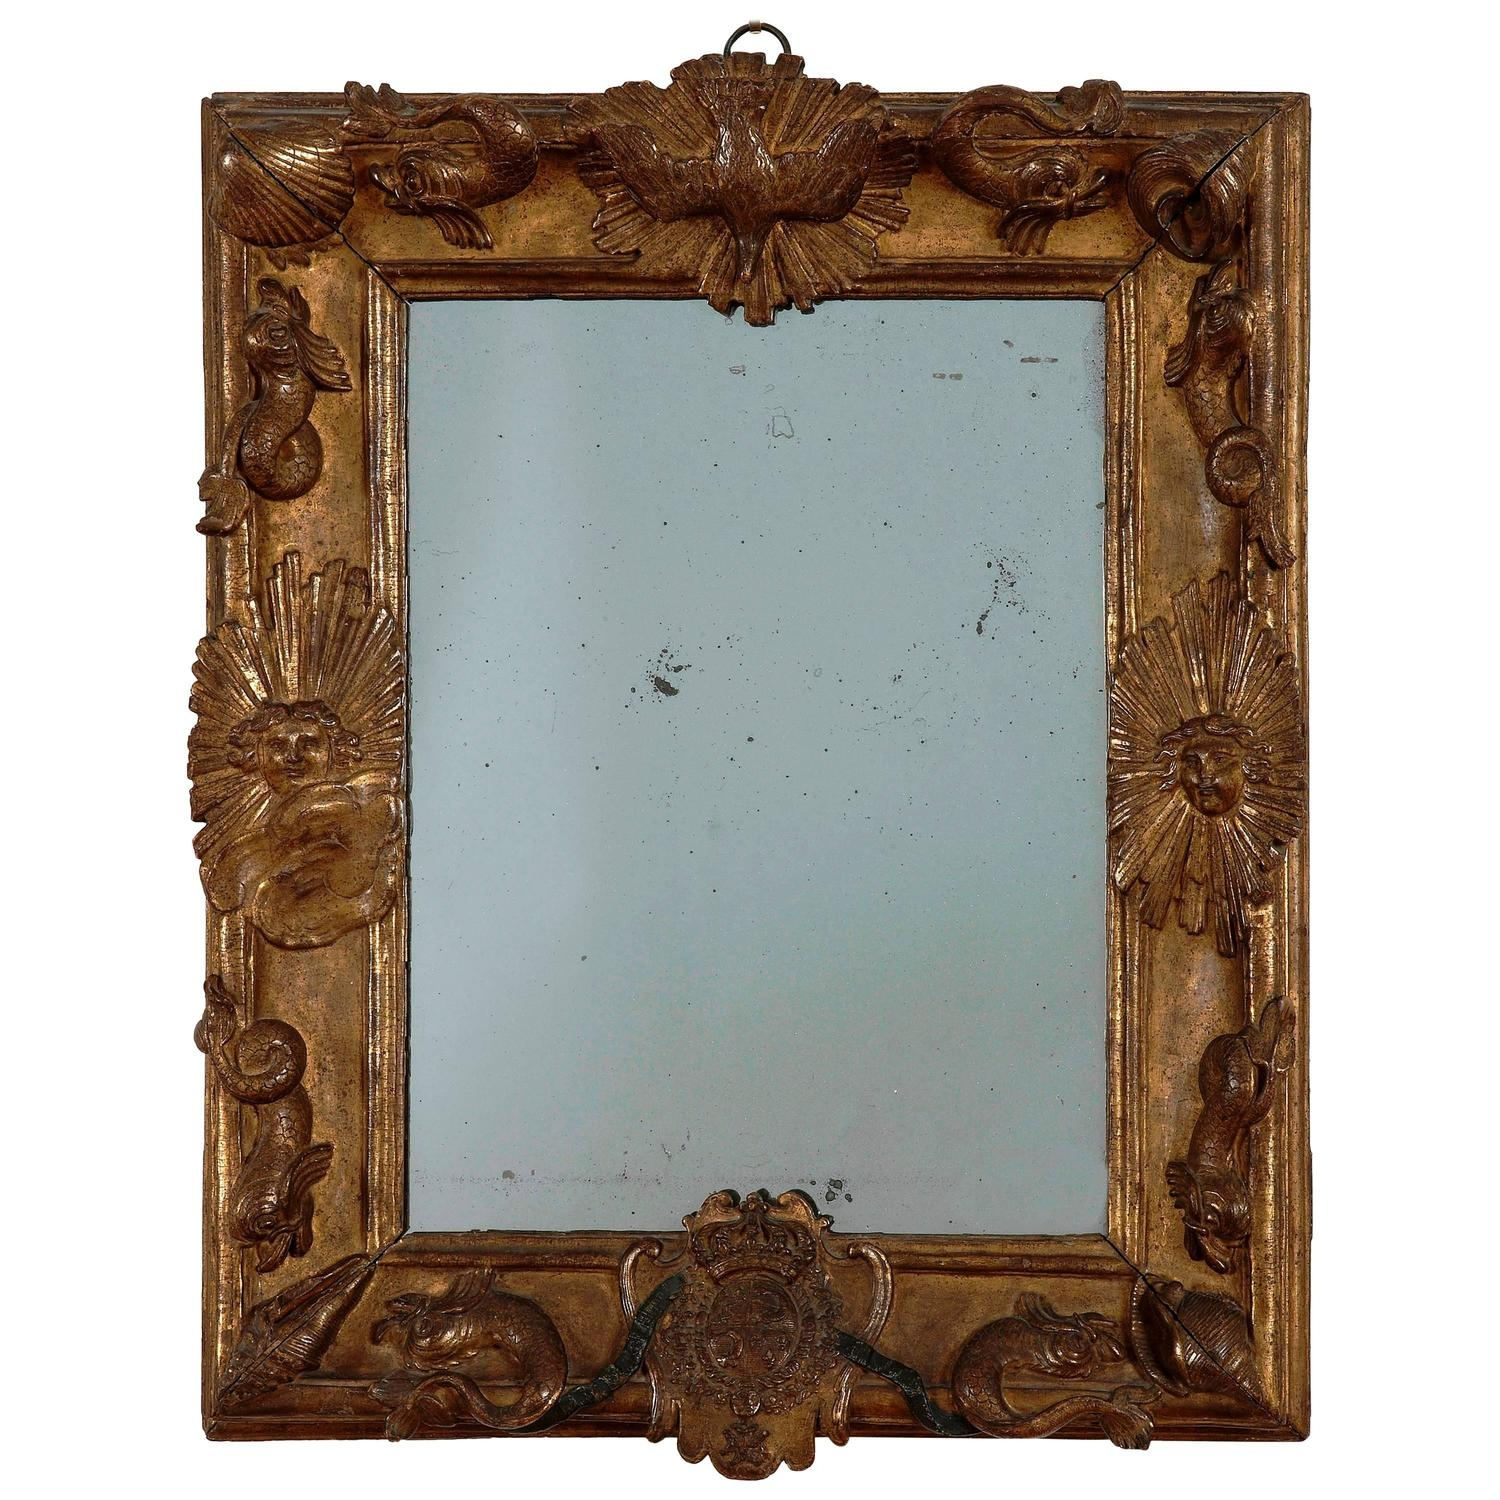 17th Century Mirrors 83 For Sale At 1stdibs In Gilded Mirrors For Sale (Image 1 of 15)